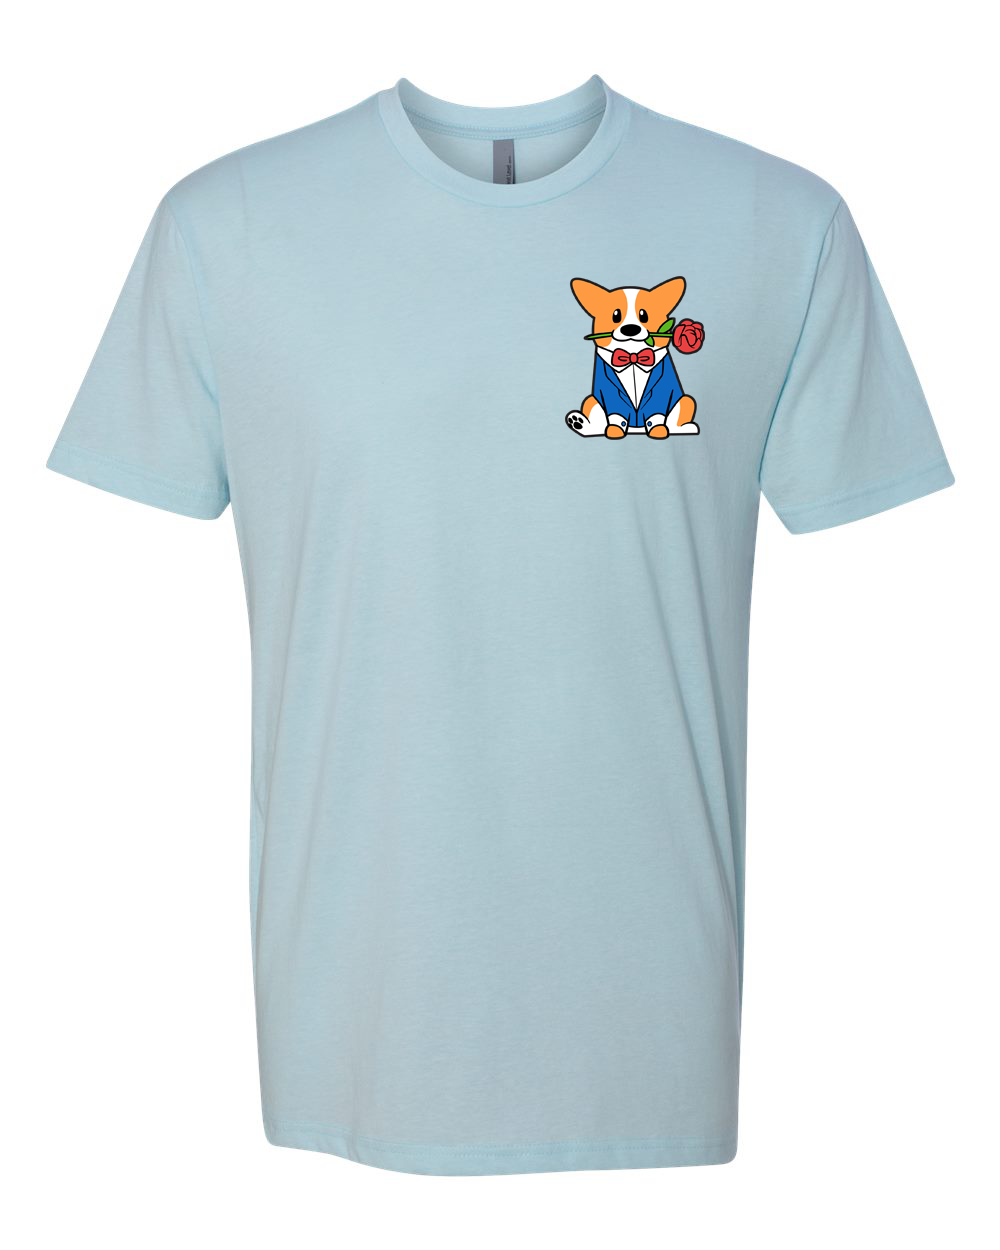 FALL 2019 | UNIVERSITY OF CORGIFORNIA HOMECOMING DANCE | UNISEX TEE SHIRT